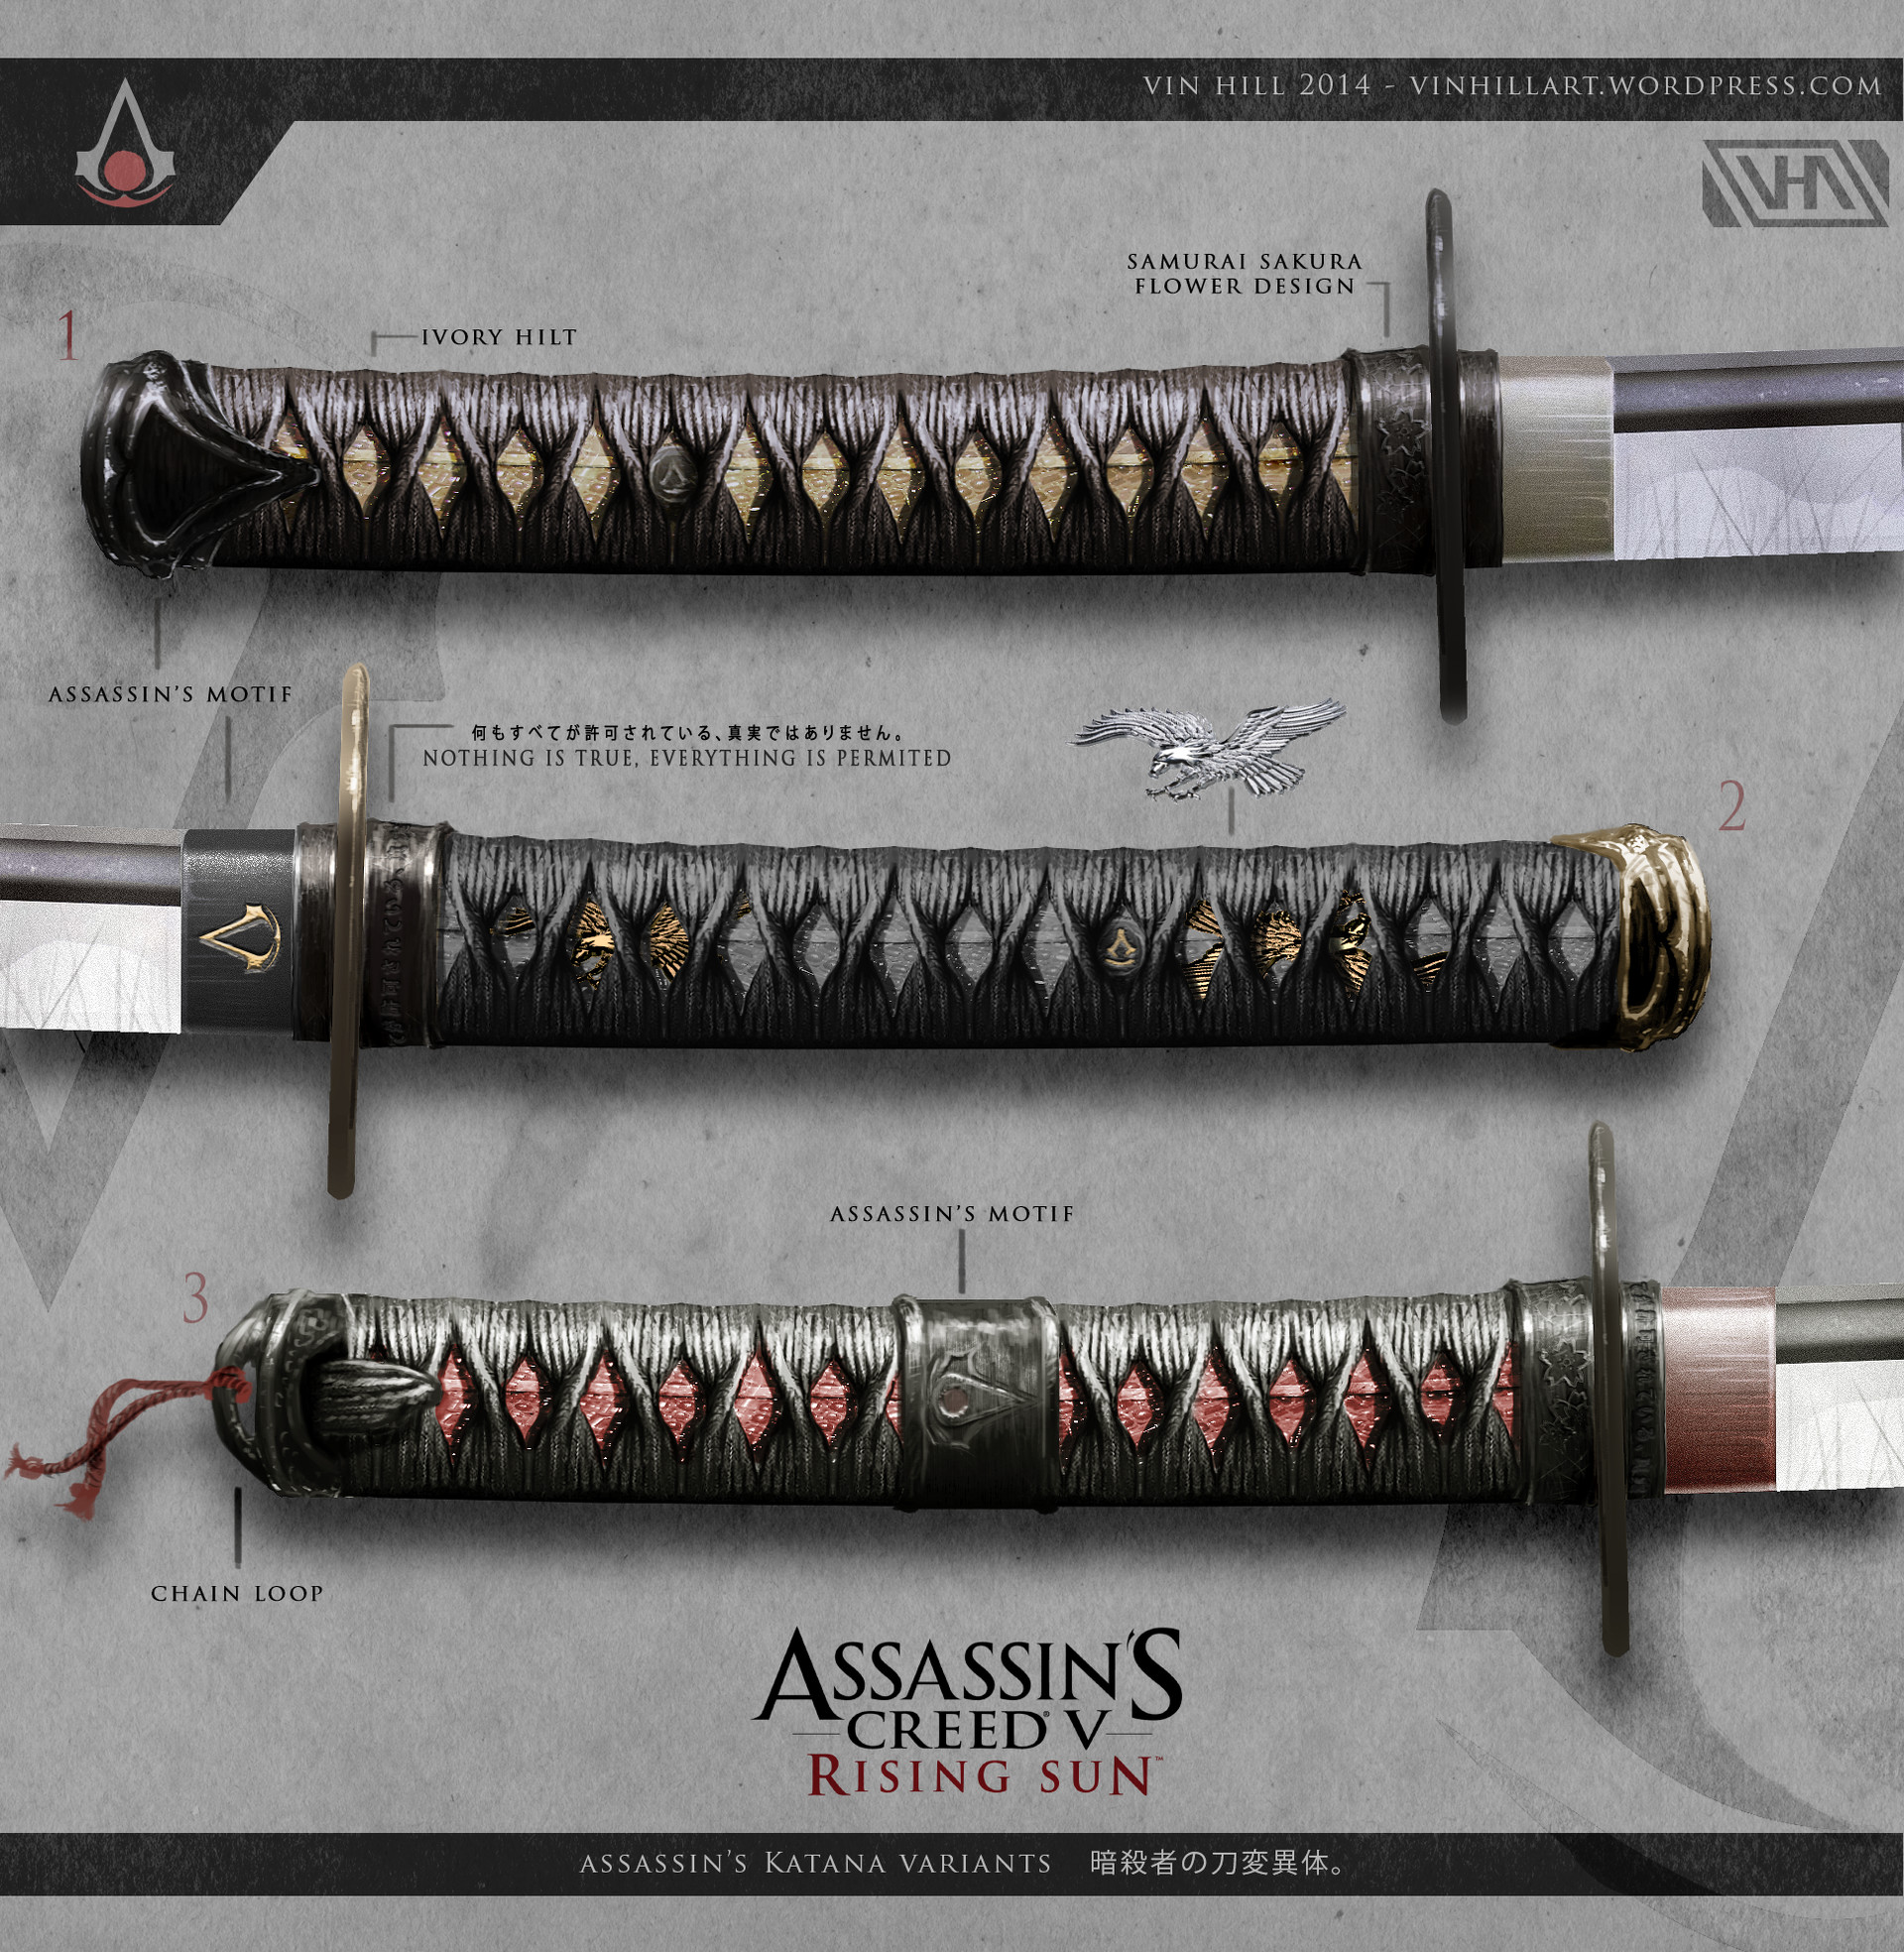 Vin hill assassins creed 5 swords